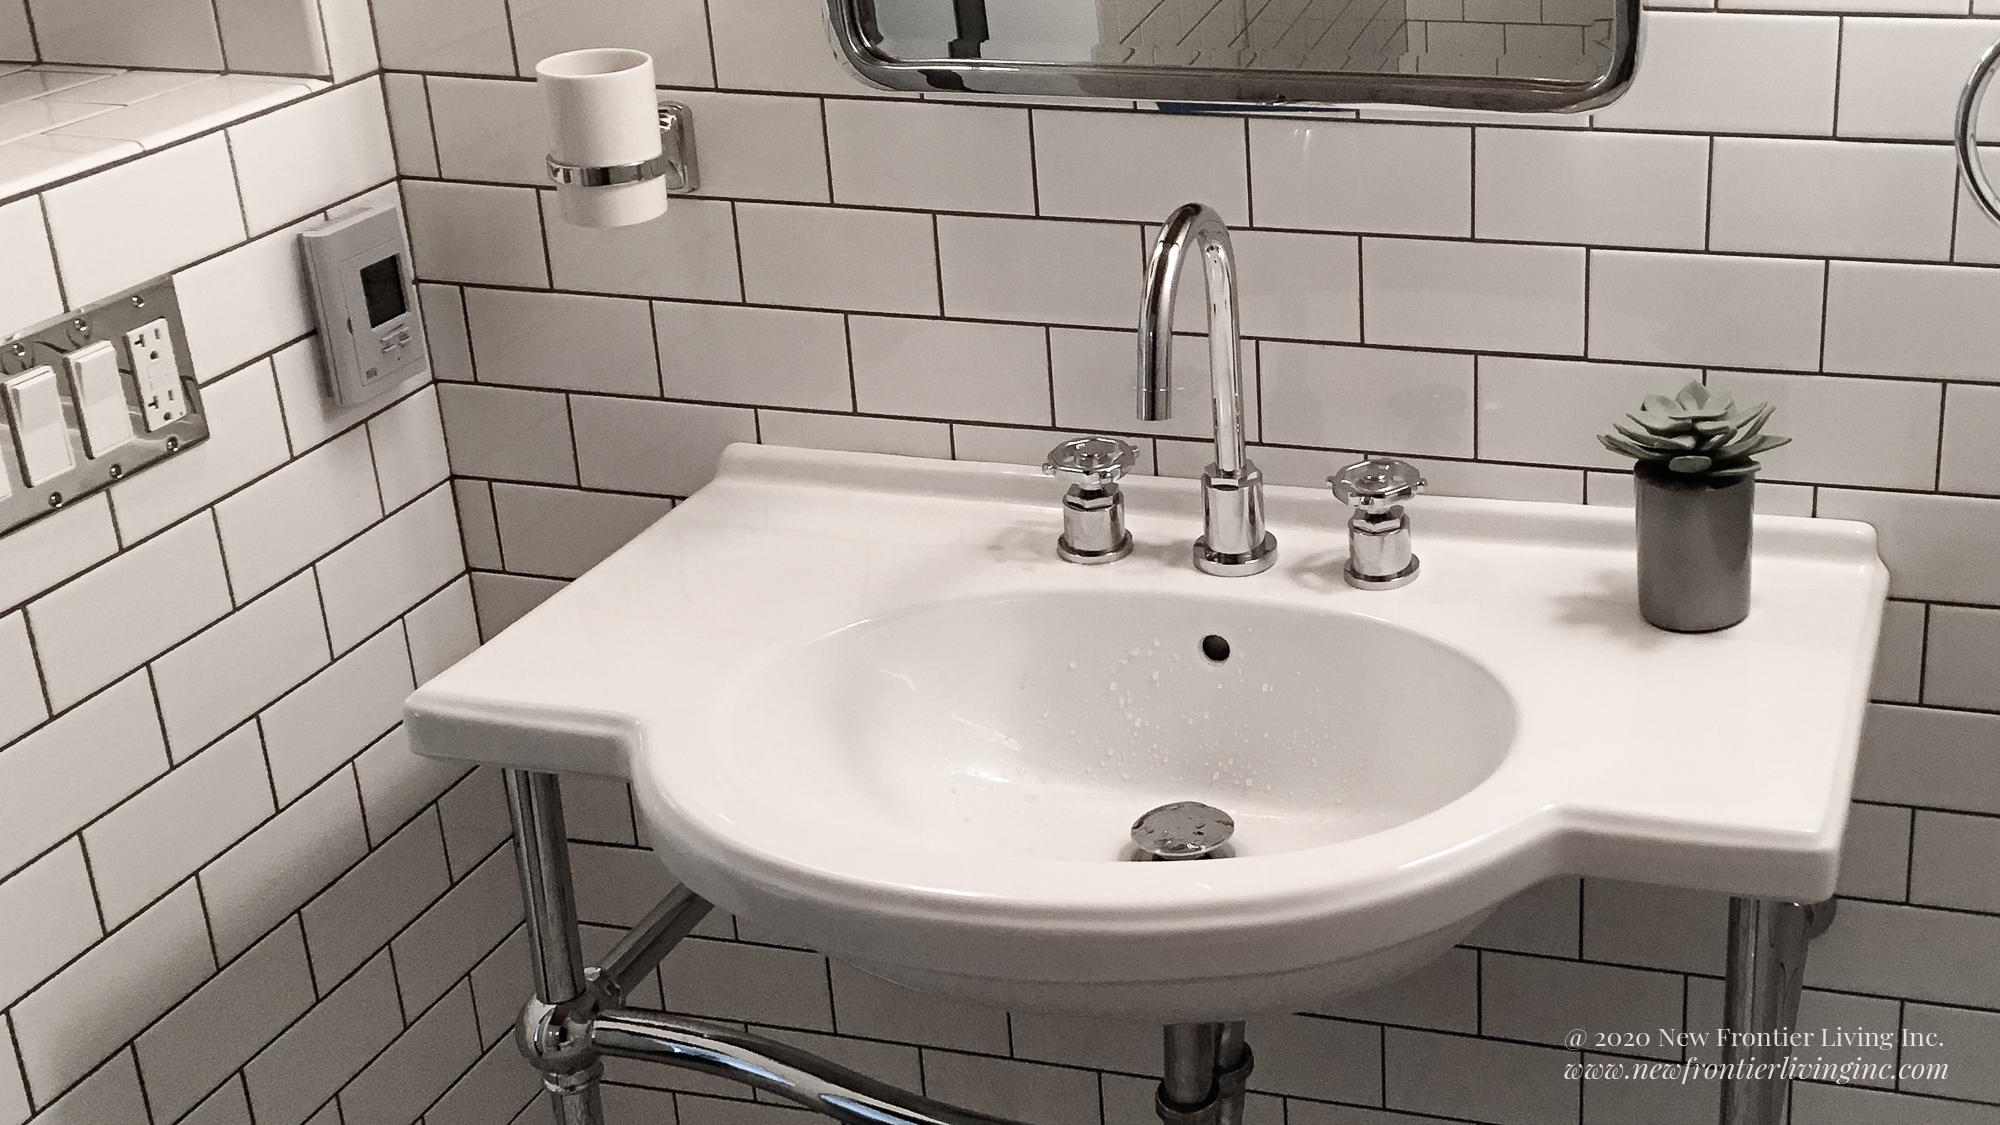 Traditional white ceramic bathroom with a console sink